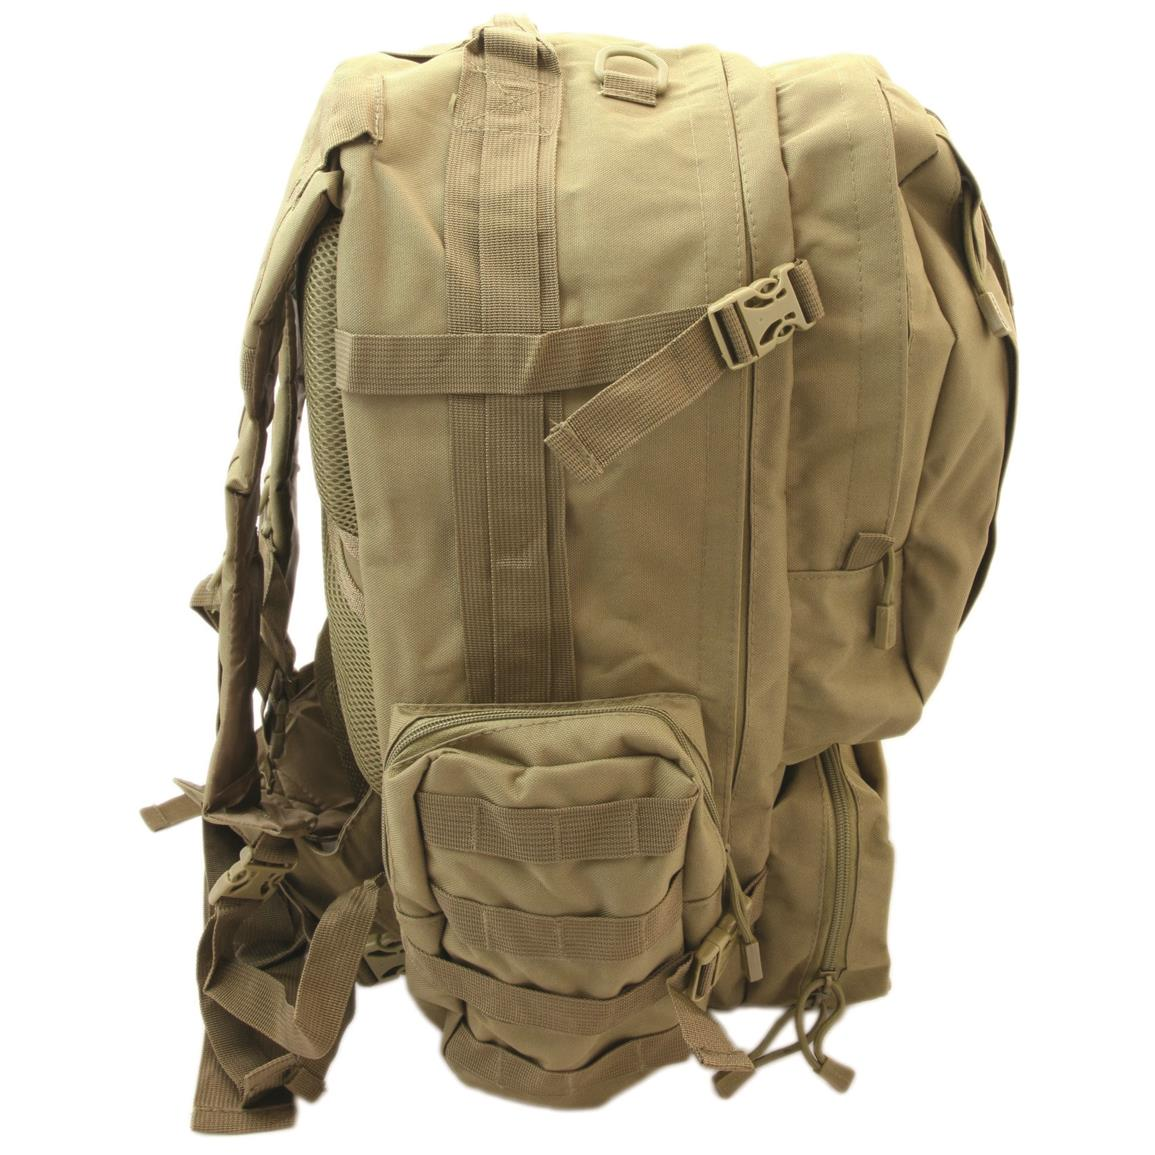 MOLLE attachment points